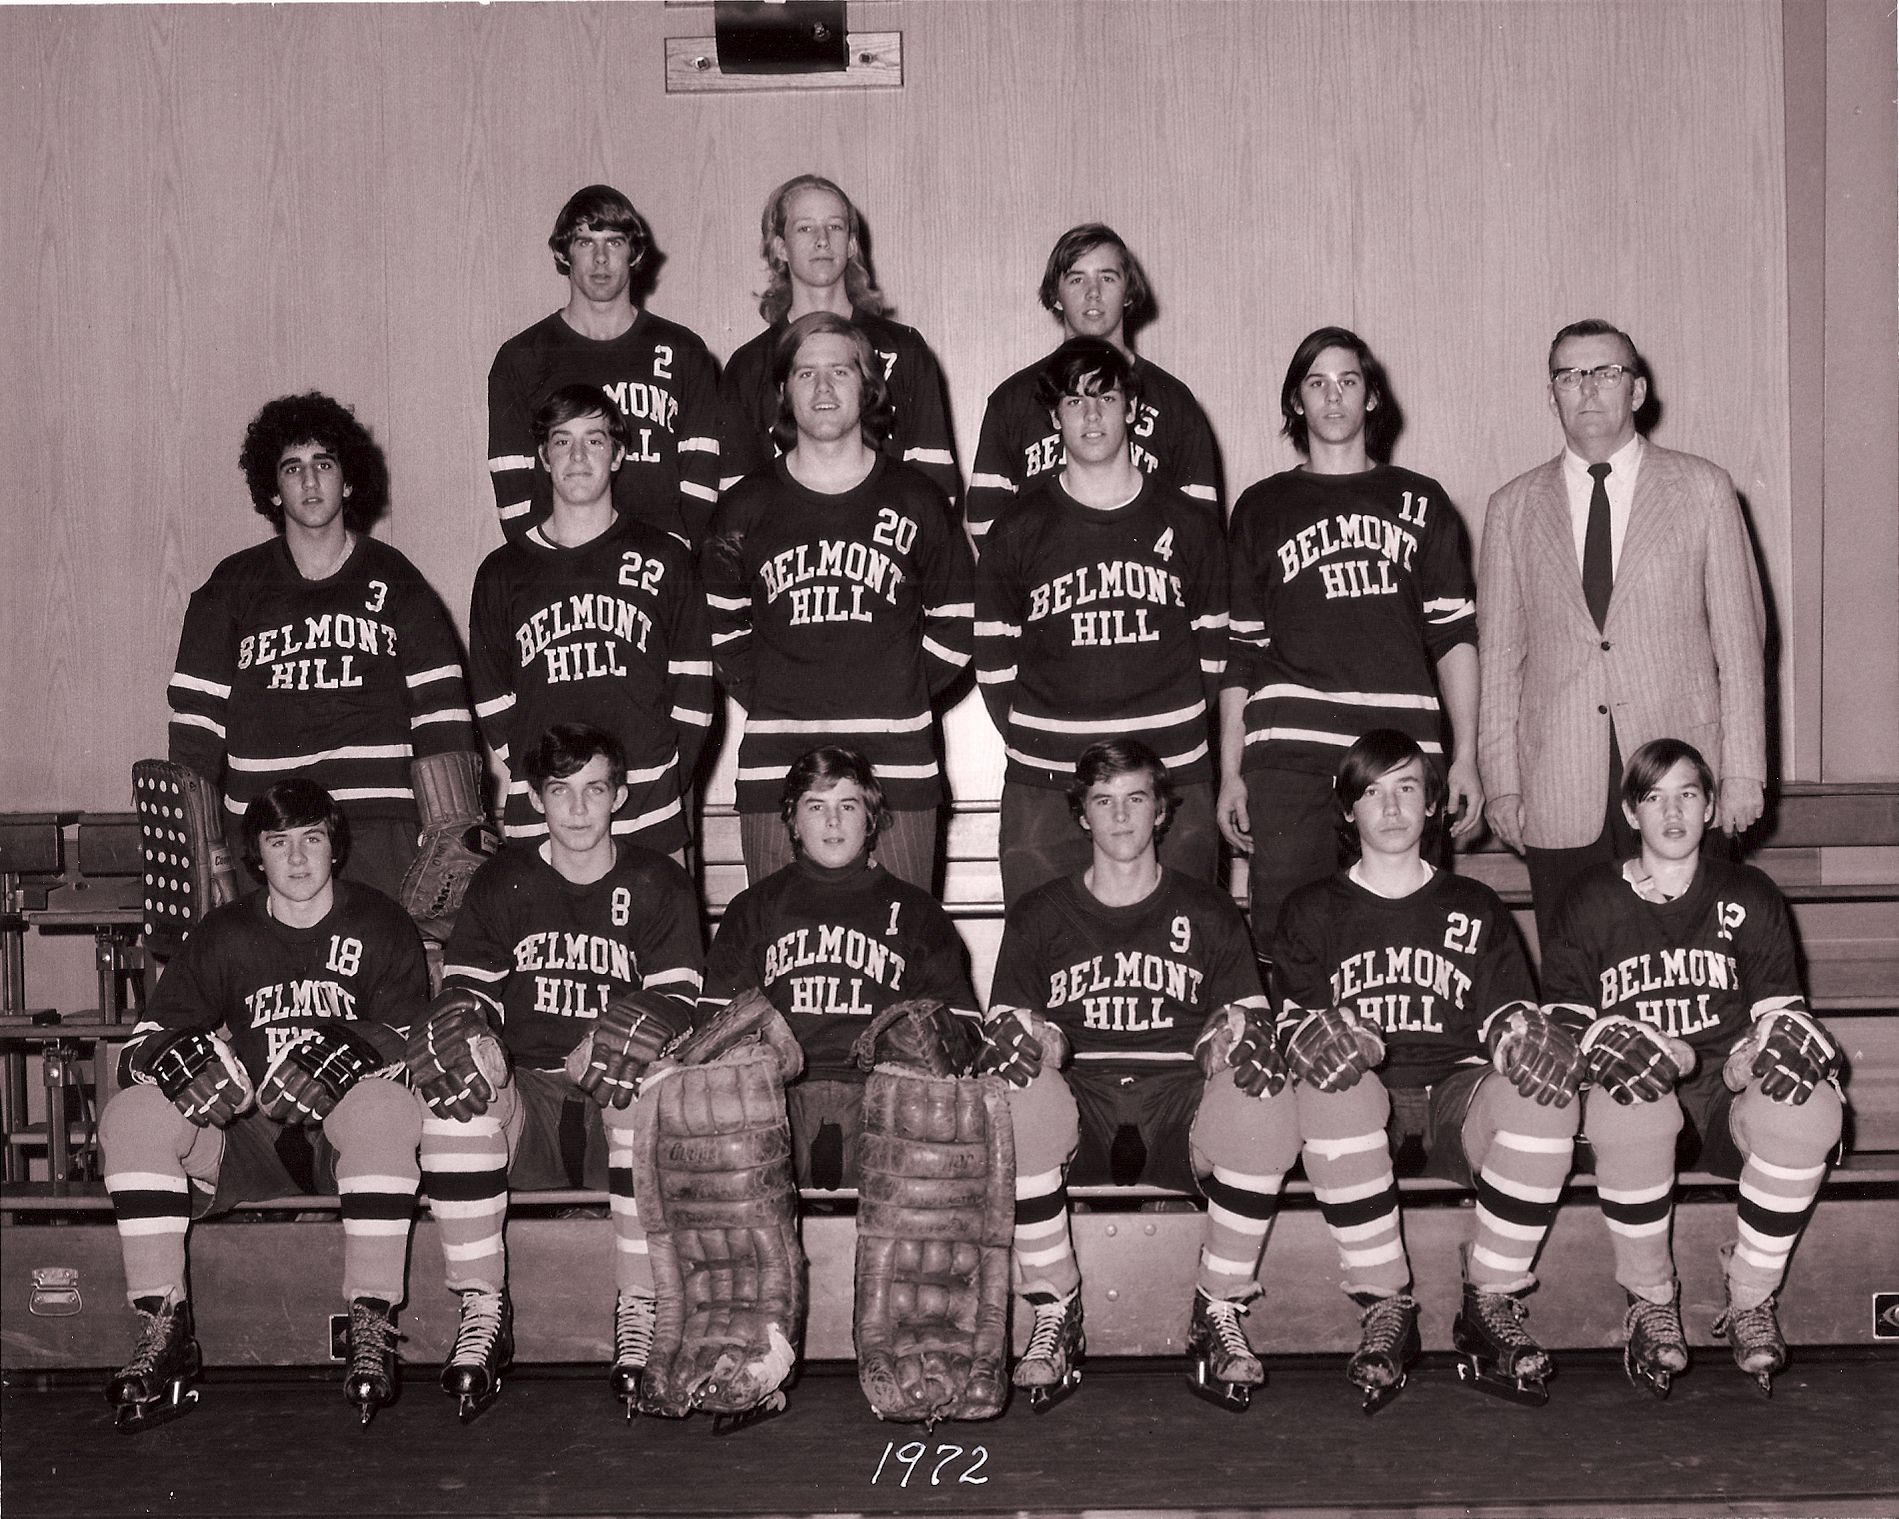 First Row: Finnerty, Lyons, John Aiken, Jim Aiken, Flynn, Dave Kelly,  Second Row: Wald, Weeks, Robertson, Shanahan, Schley, Mr. Walworth,  Third Row: Burchard, Dunphy, Paul Kelly